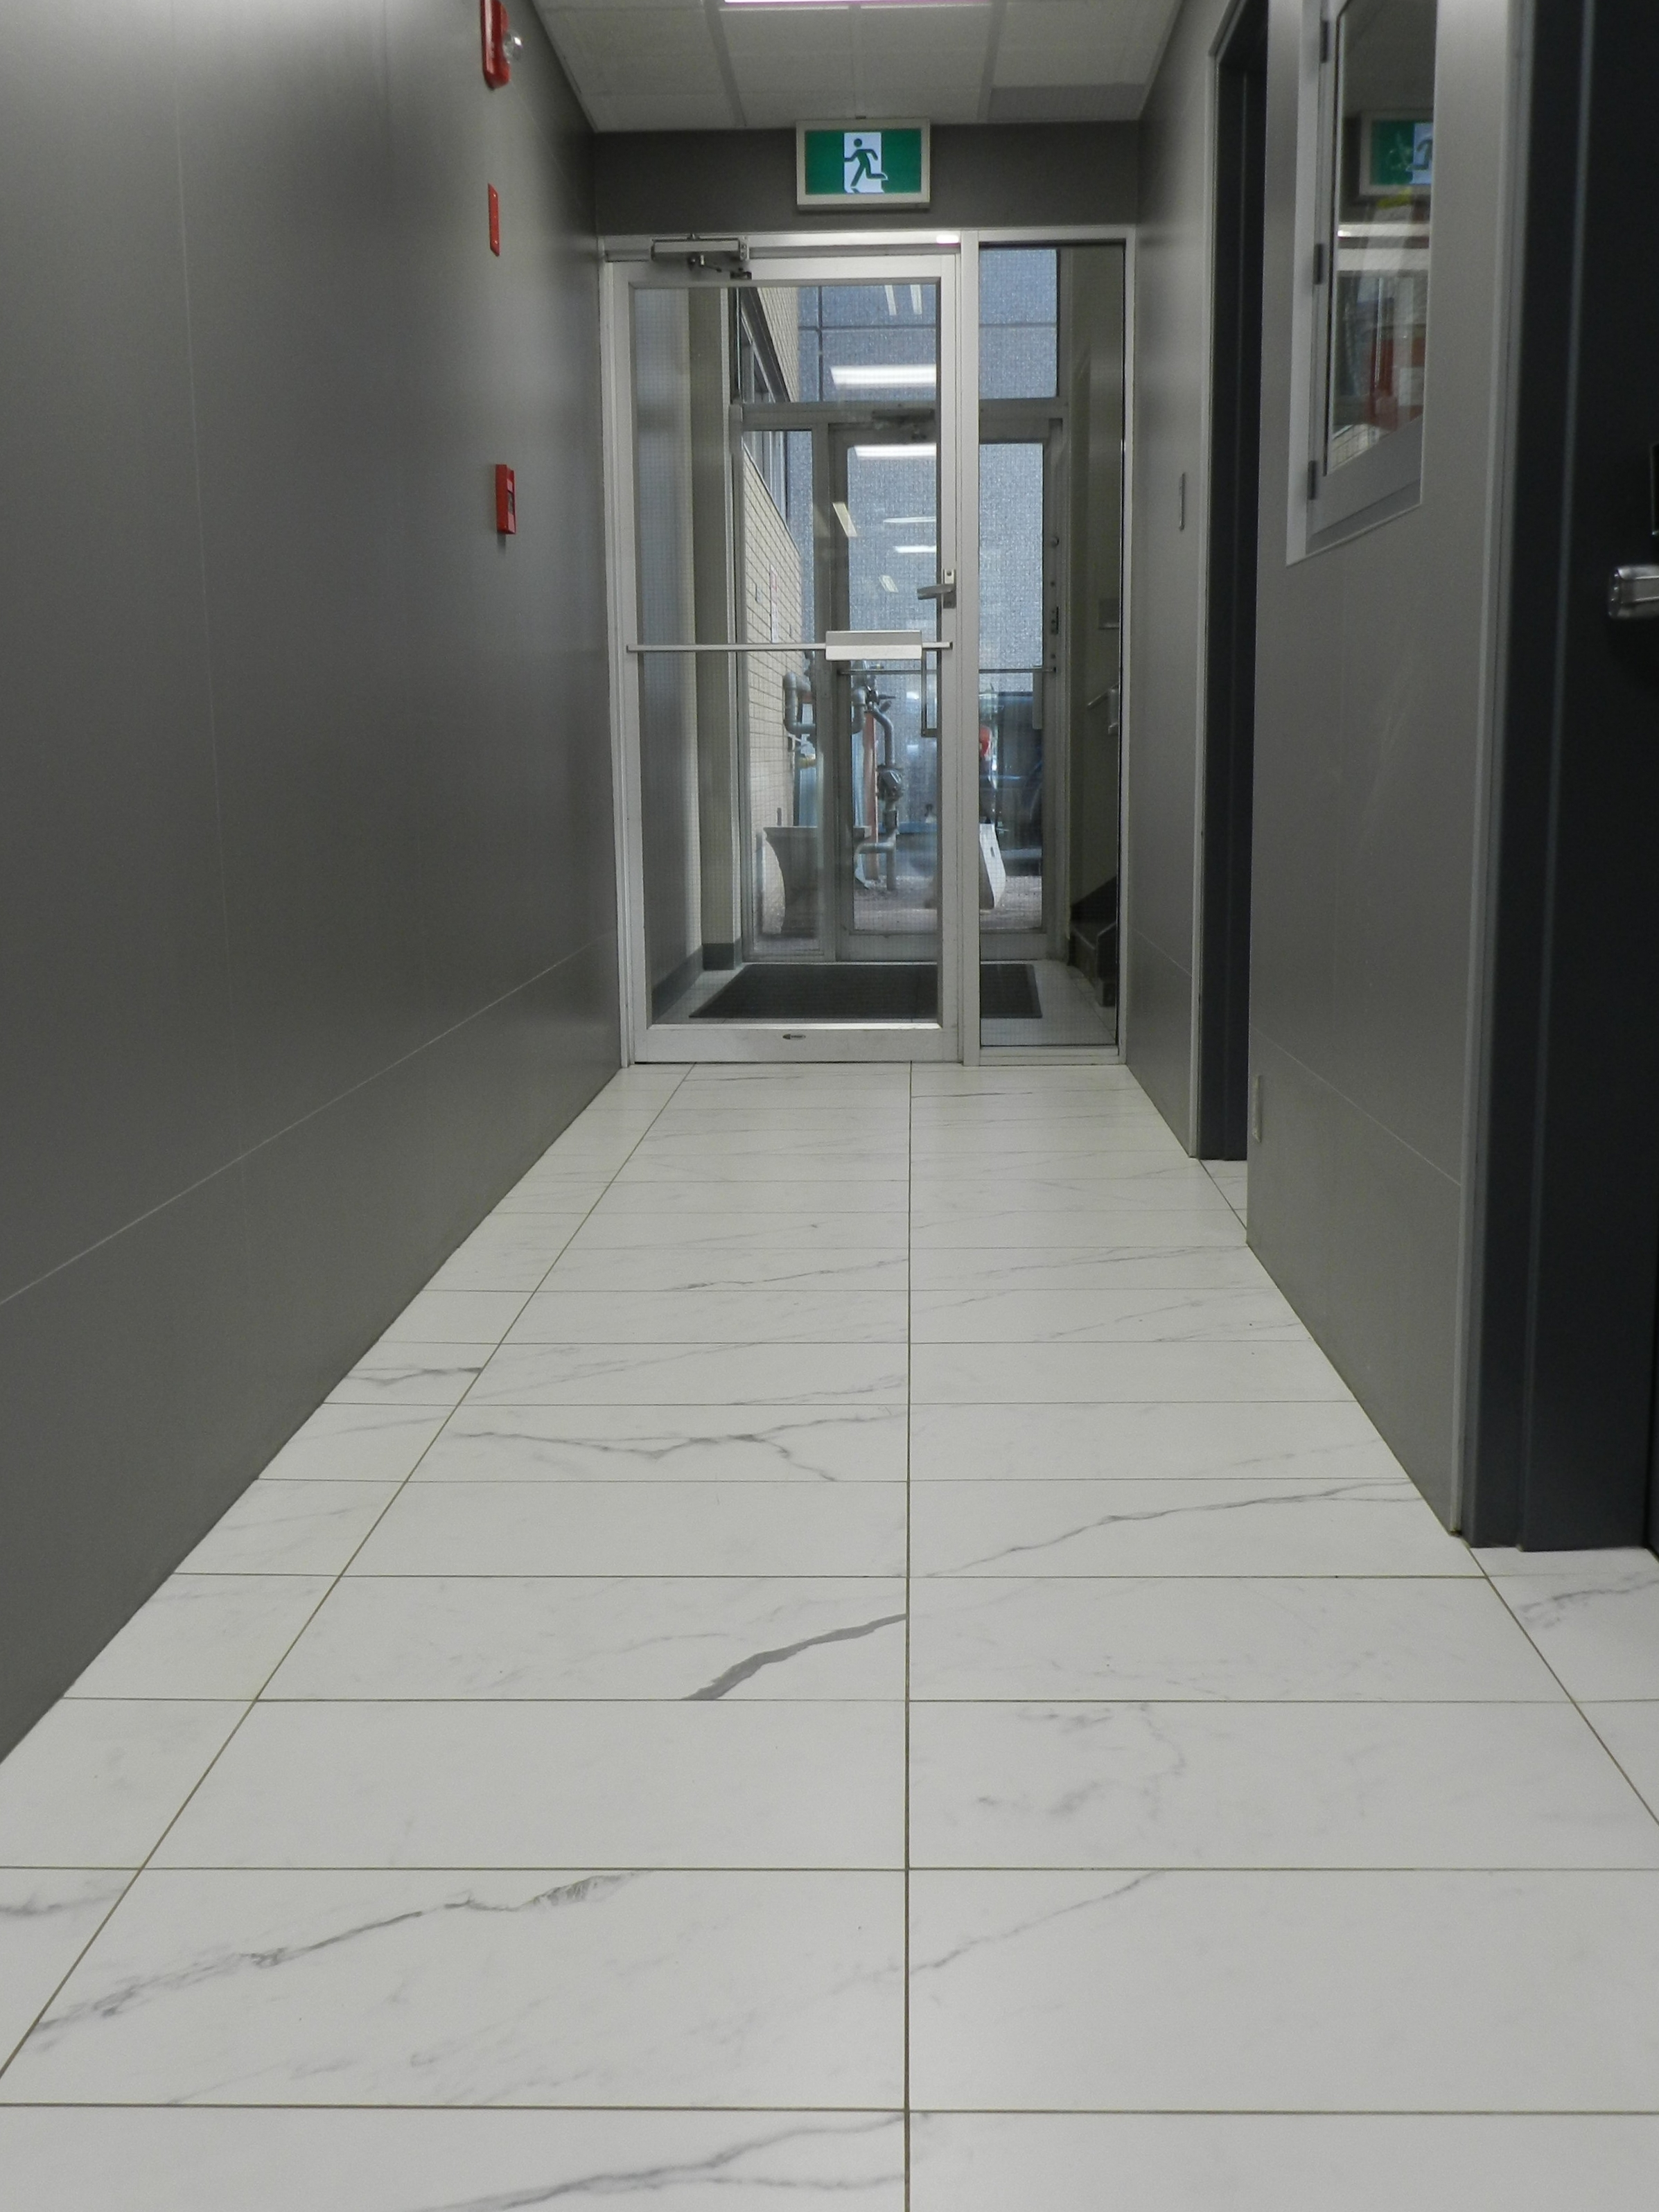 A large format marble-look porcelain is fresh and modern. The walls of this entry are covered in a graffiti resistant tile. The outside of the building has this too.